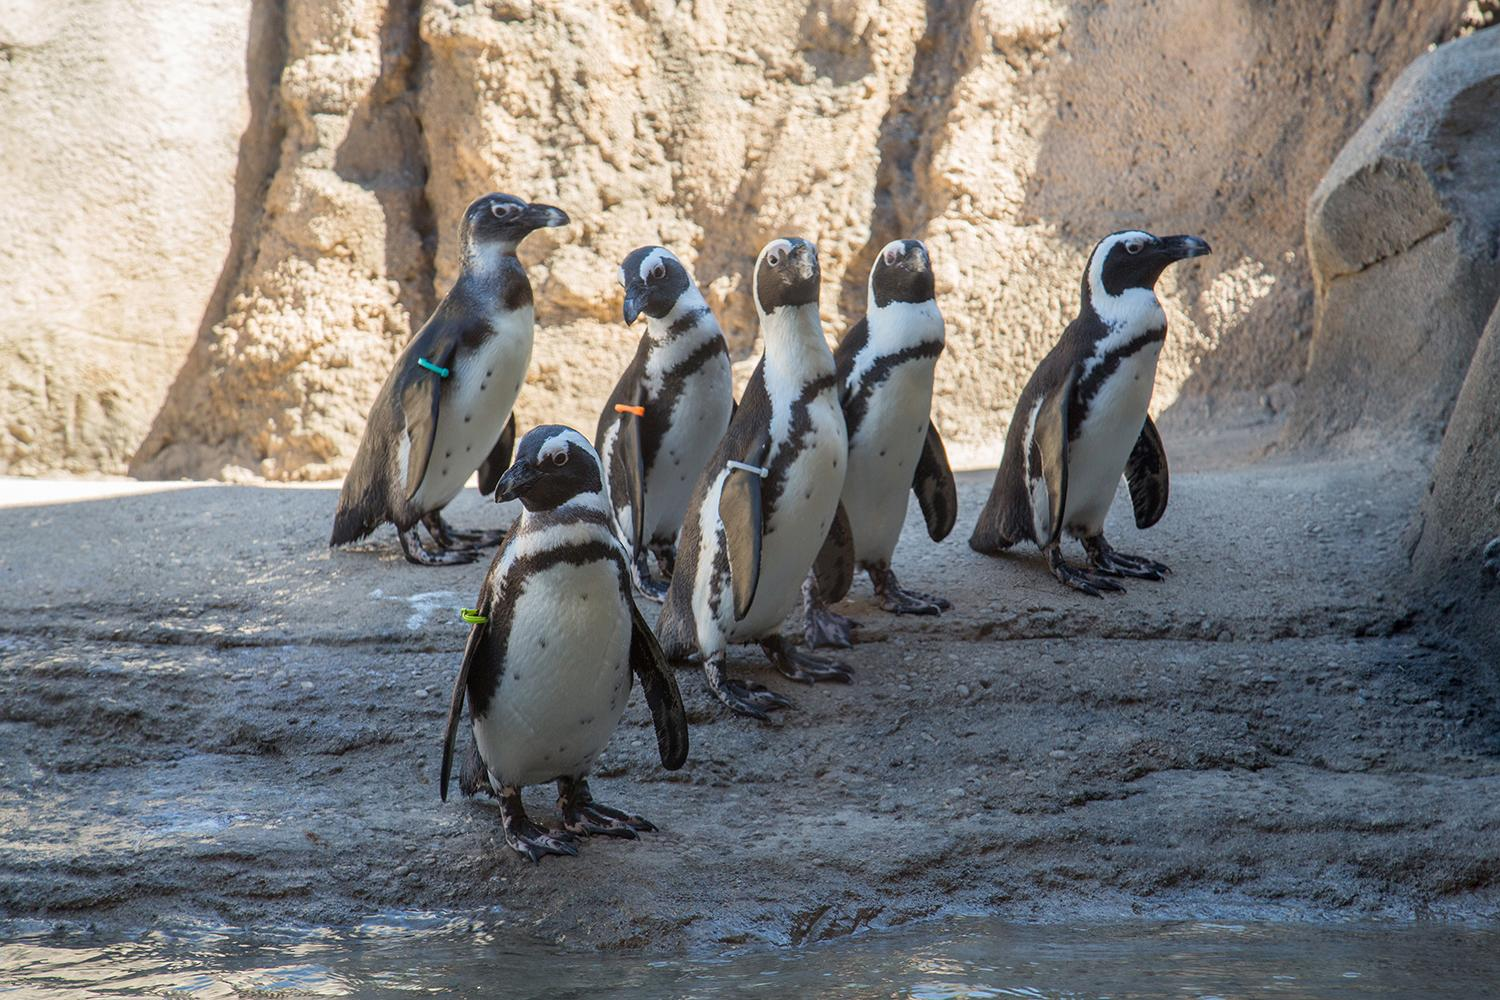 Penguins at Lincoln Park Zoo took notice of Monday's solar eclipse, research scientist Katie Cronin said. (Julia Fuller / Lincoln Park Zoo)